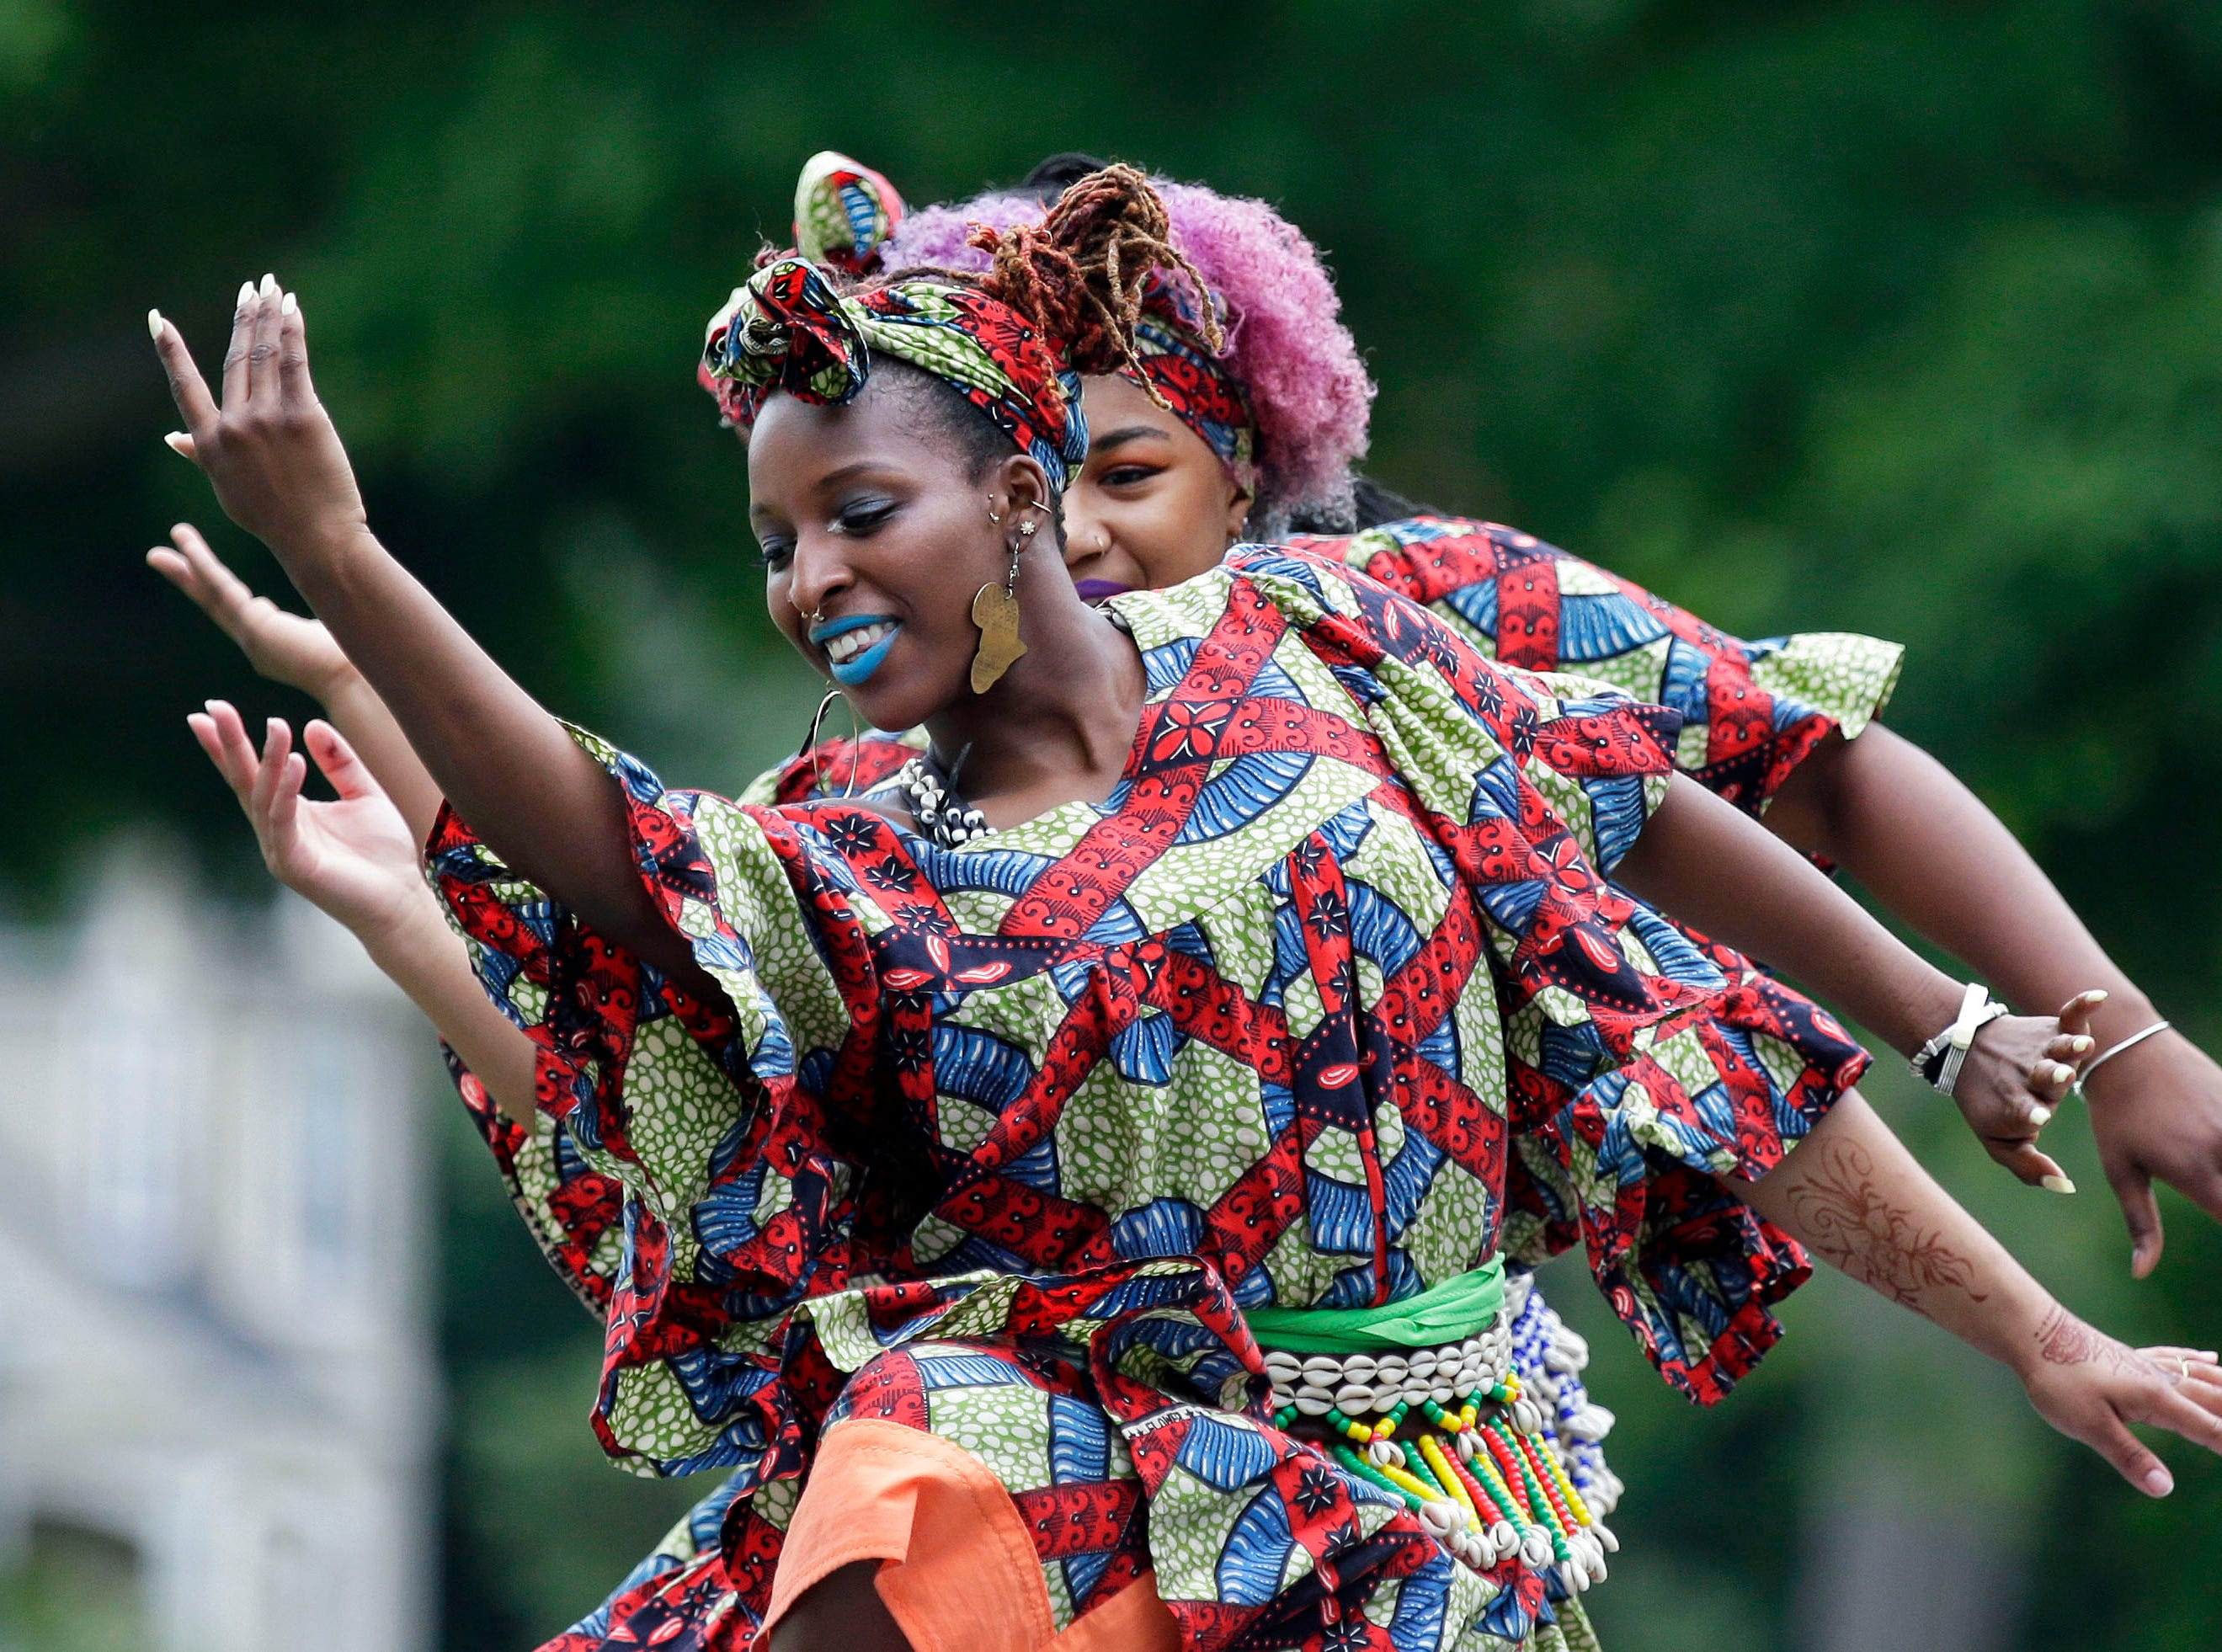 Members of the Muntu Dance Theatre of Chicago perform during the 2018 Juneteenth Festival Sunday, June 10, 2018, at City Park in Appleton, Wis.